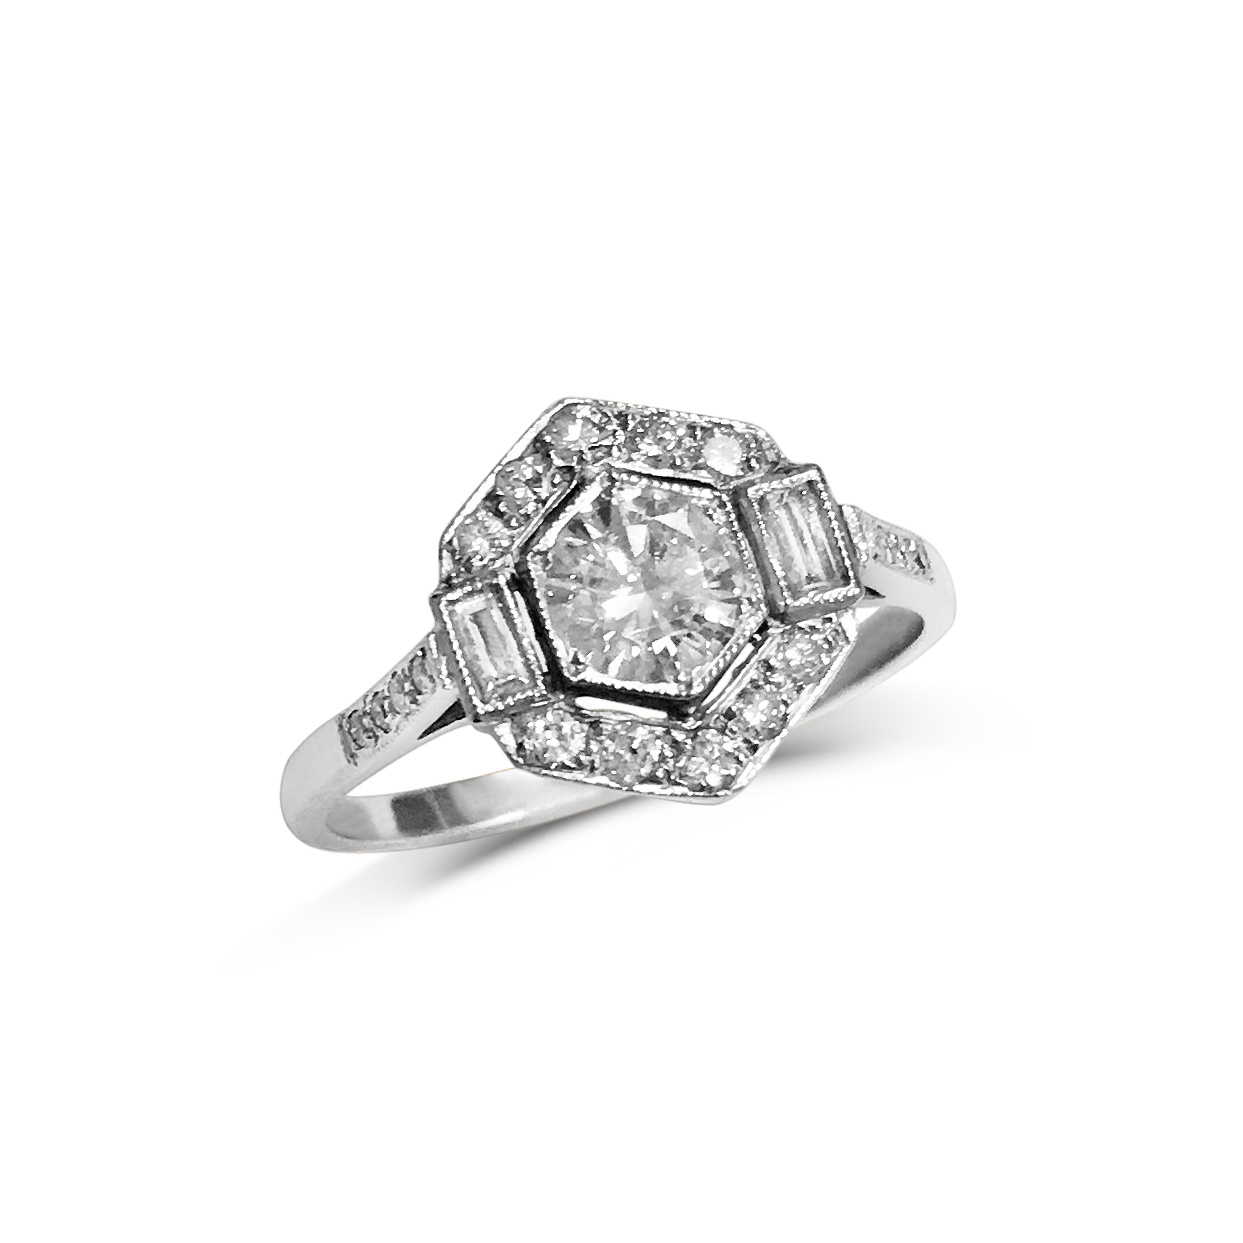 antique style hexagonal brilliant and baguette-cut diamond single row cluster ring front